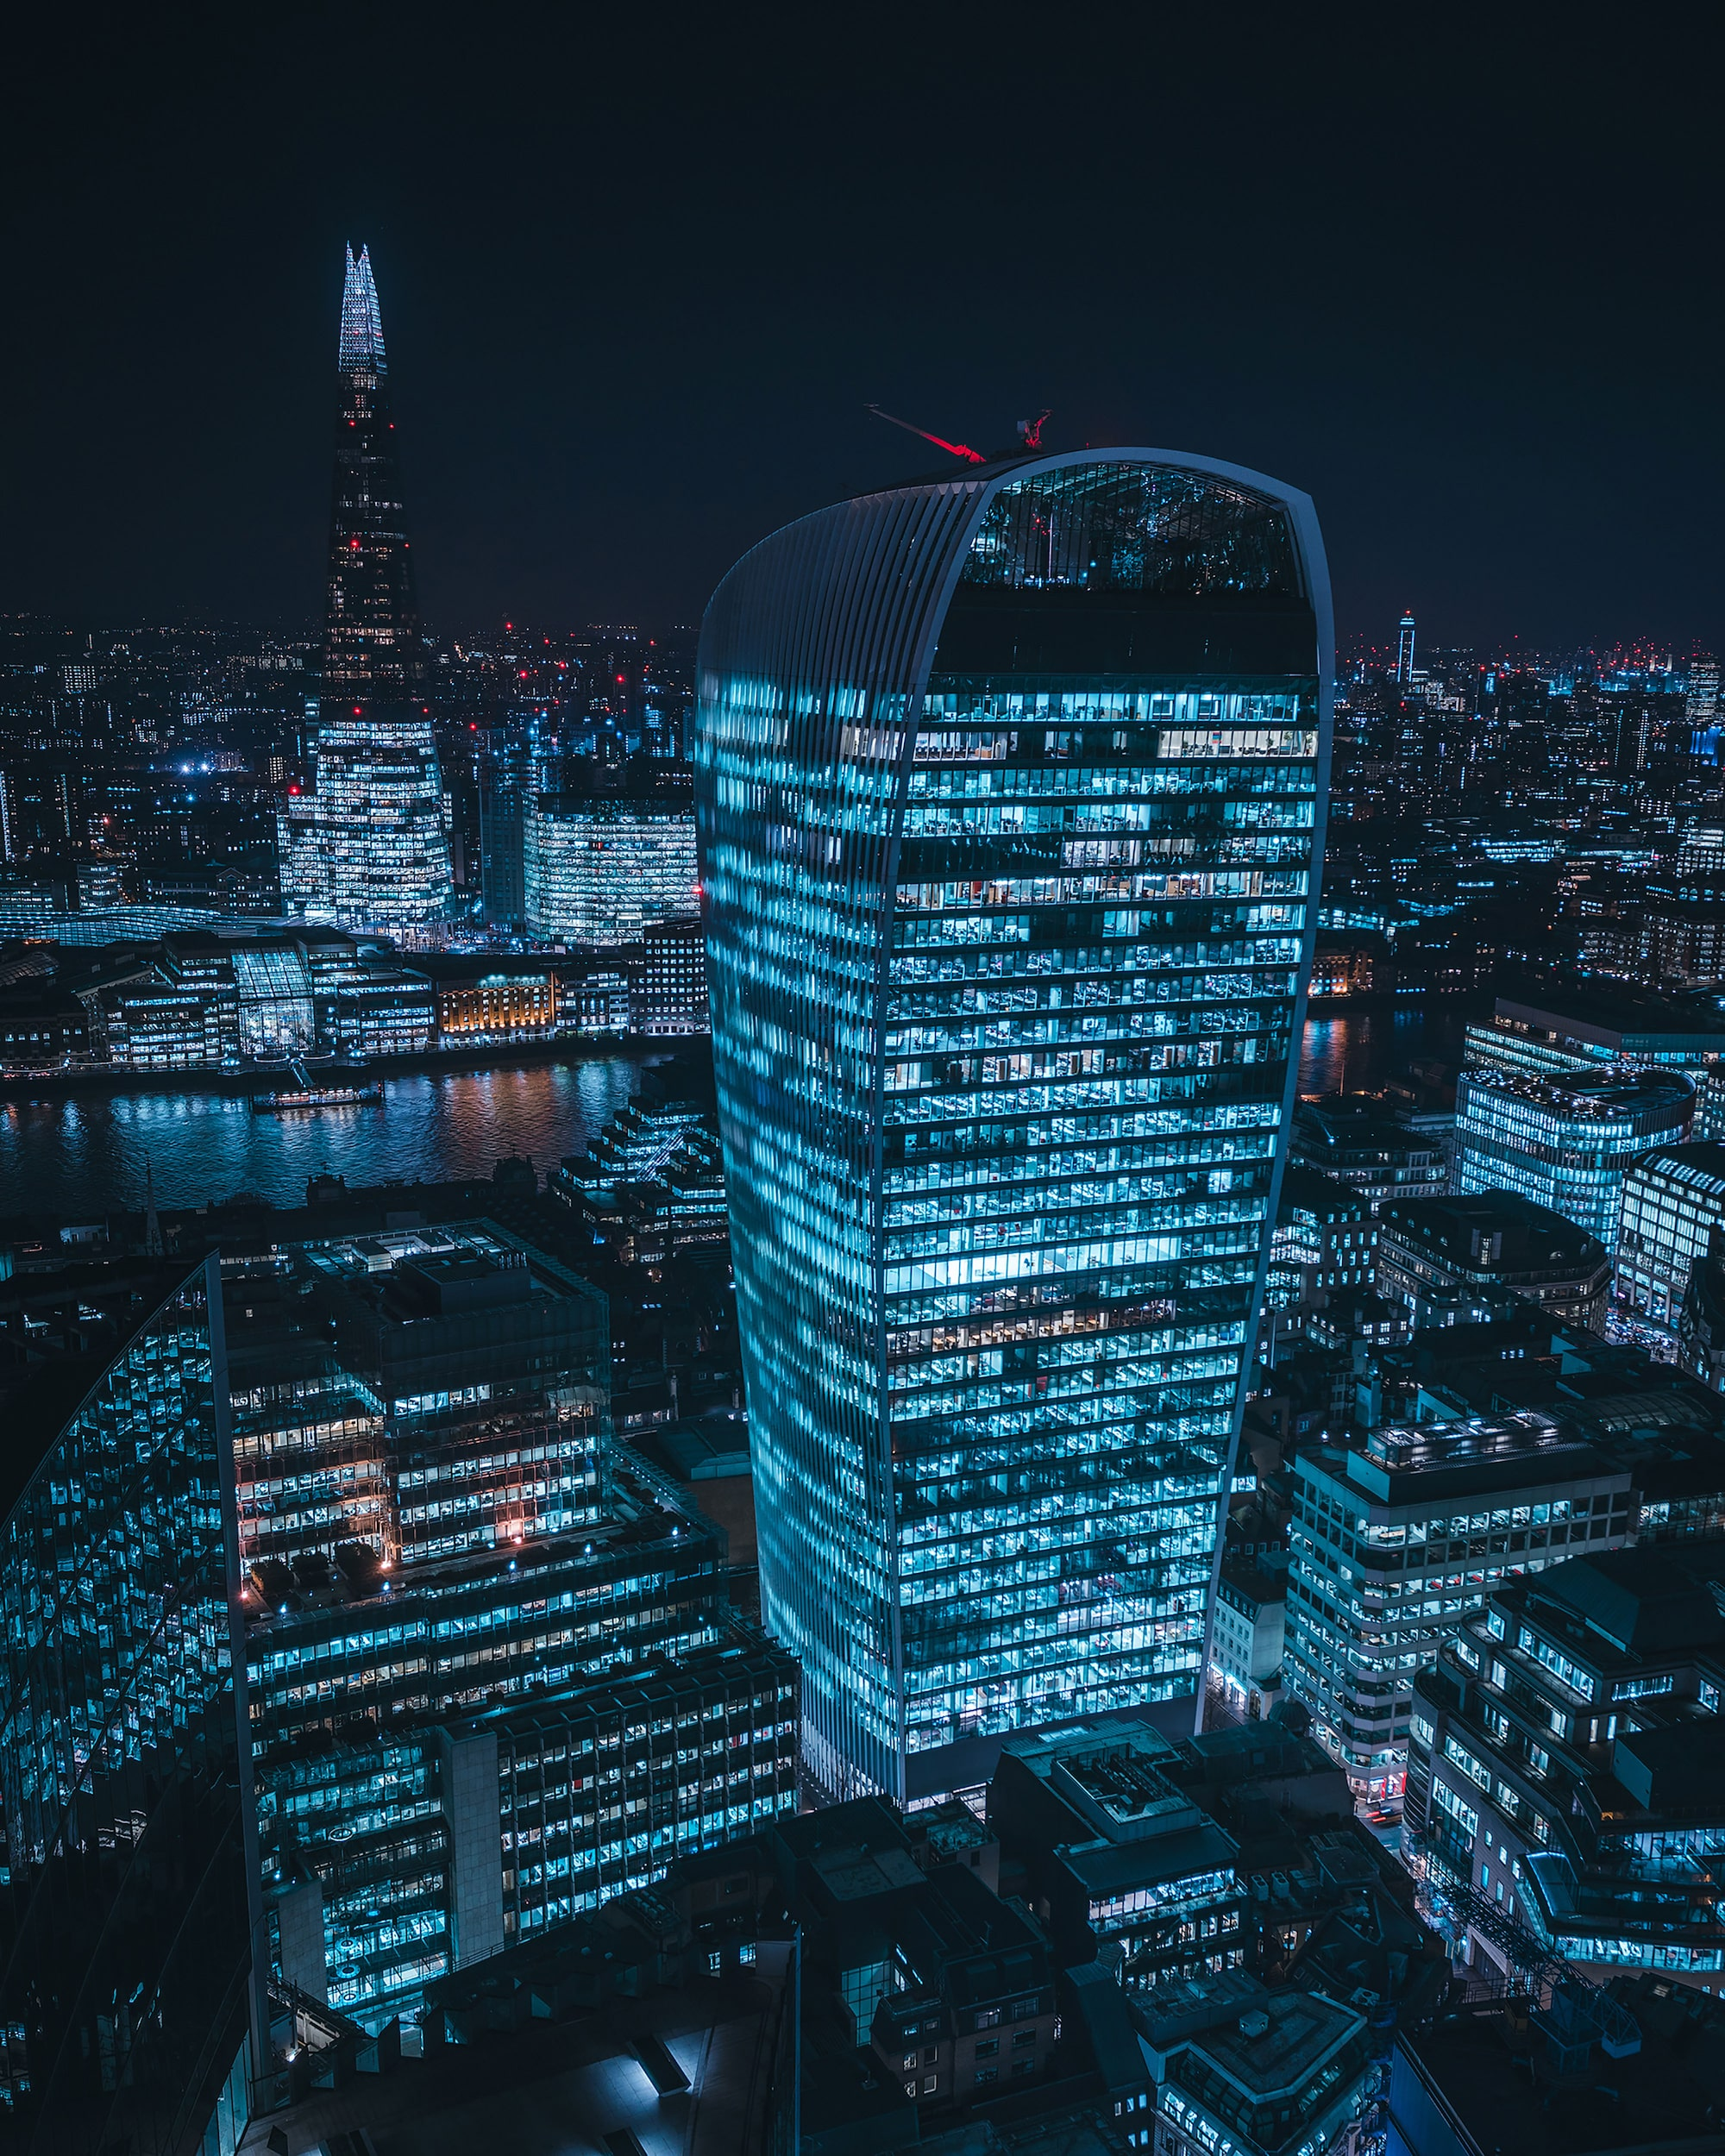 mike will sony alpha 7RIII 20 gece fenchurch binası